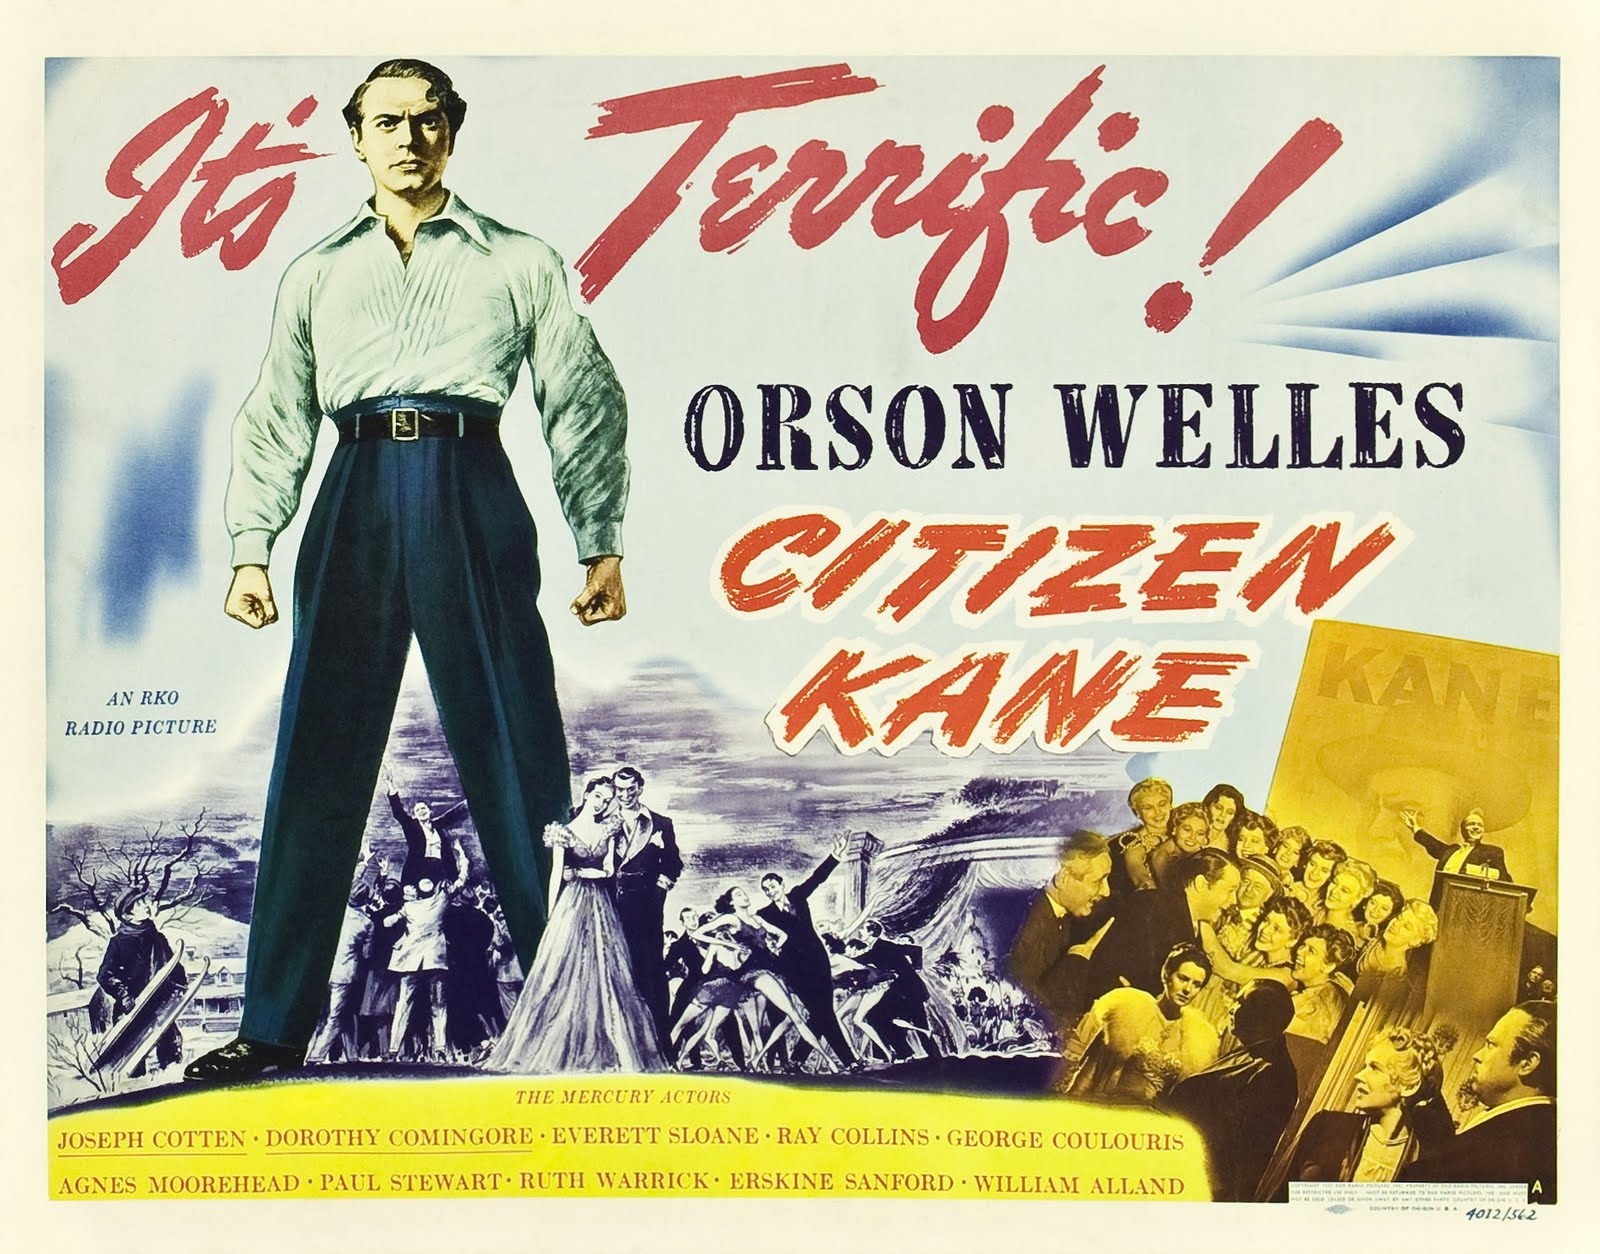 a review of citizen kane a movie by orson welles The greatest movie of all time orson welles' story of kane is a masterpiece citizen kane is the citizen kane of australia's largest movie review database.